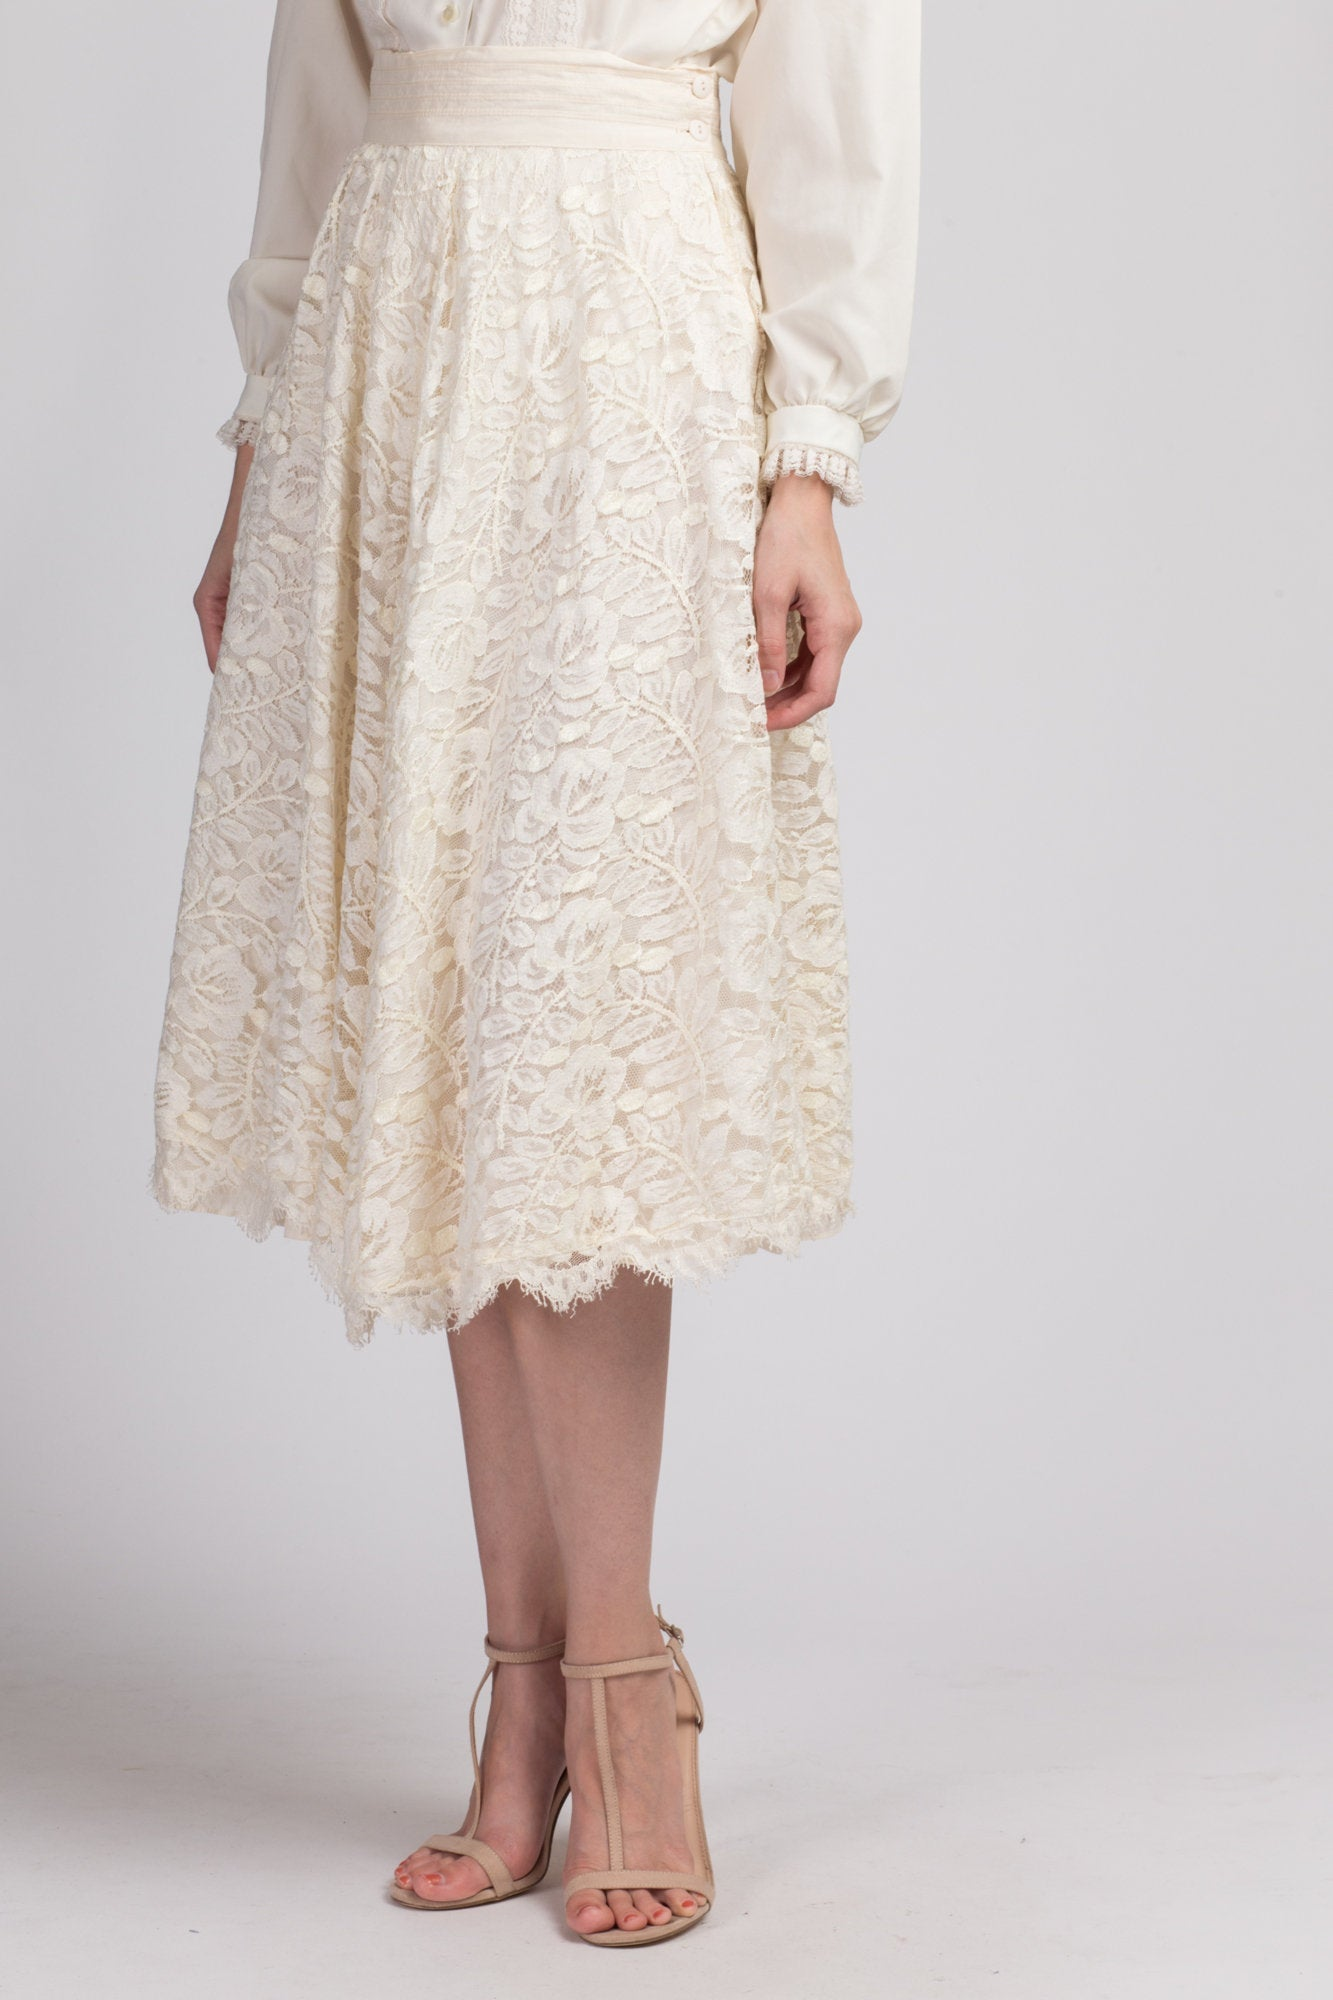 Vintage Jessica McClintock Cream Lace Skirt - Small